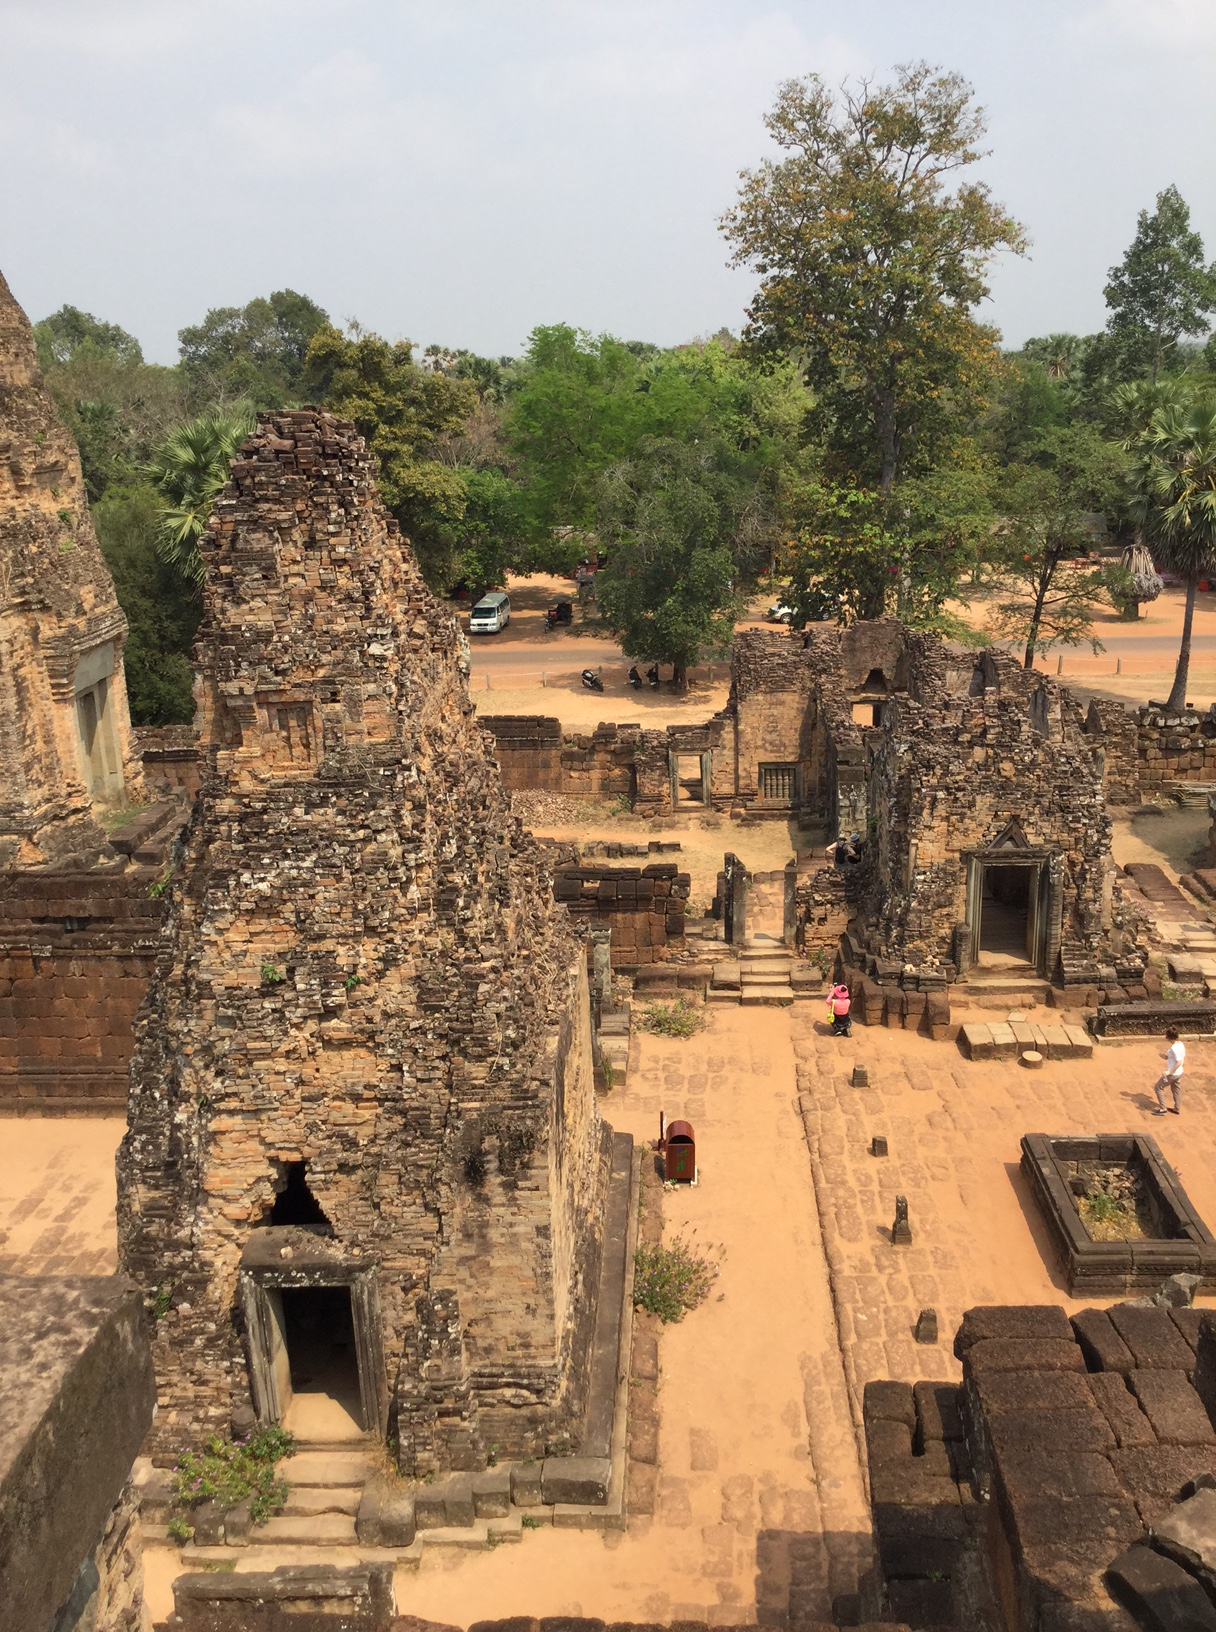 Pre Rup is a Hindu temple near Siem Reap. The building on the left is thought to be a crematorium for men.